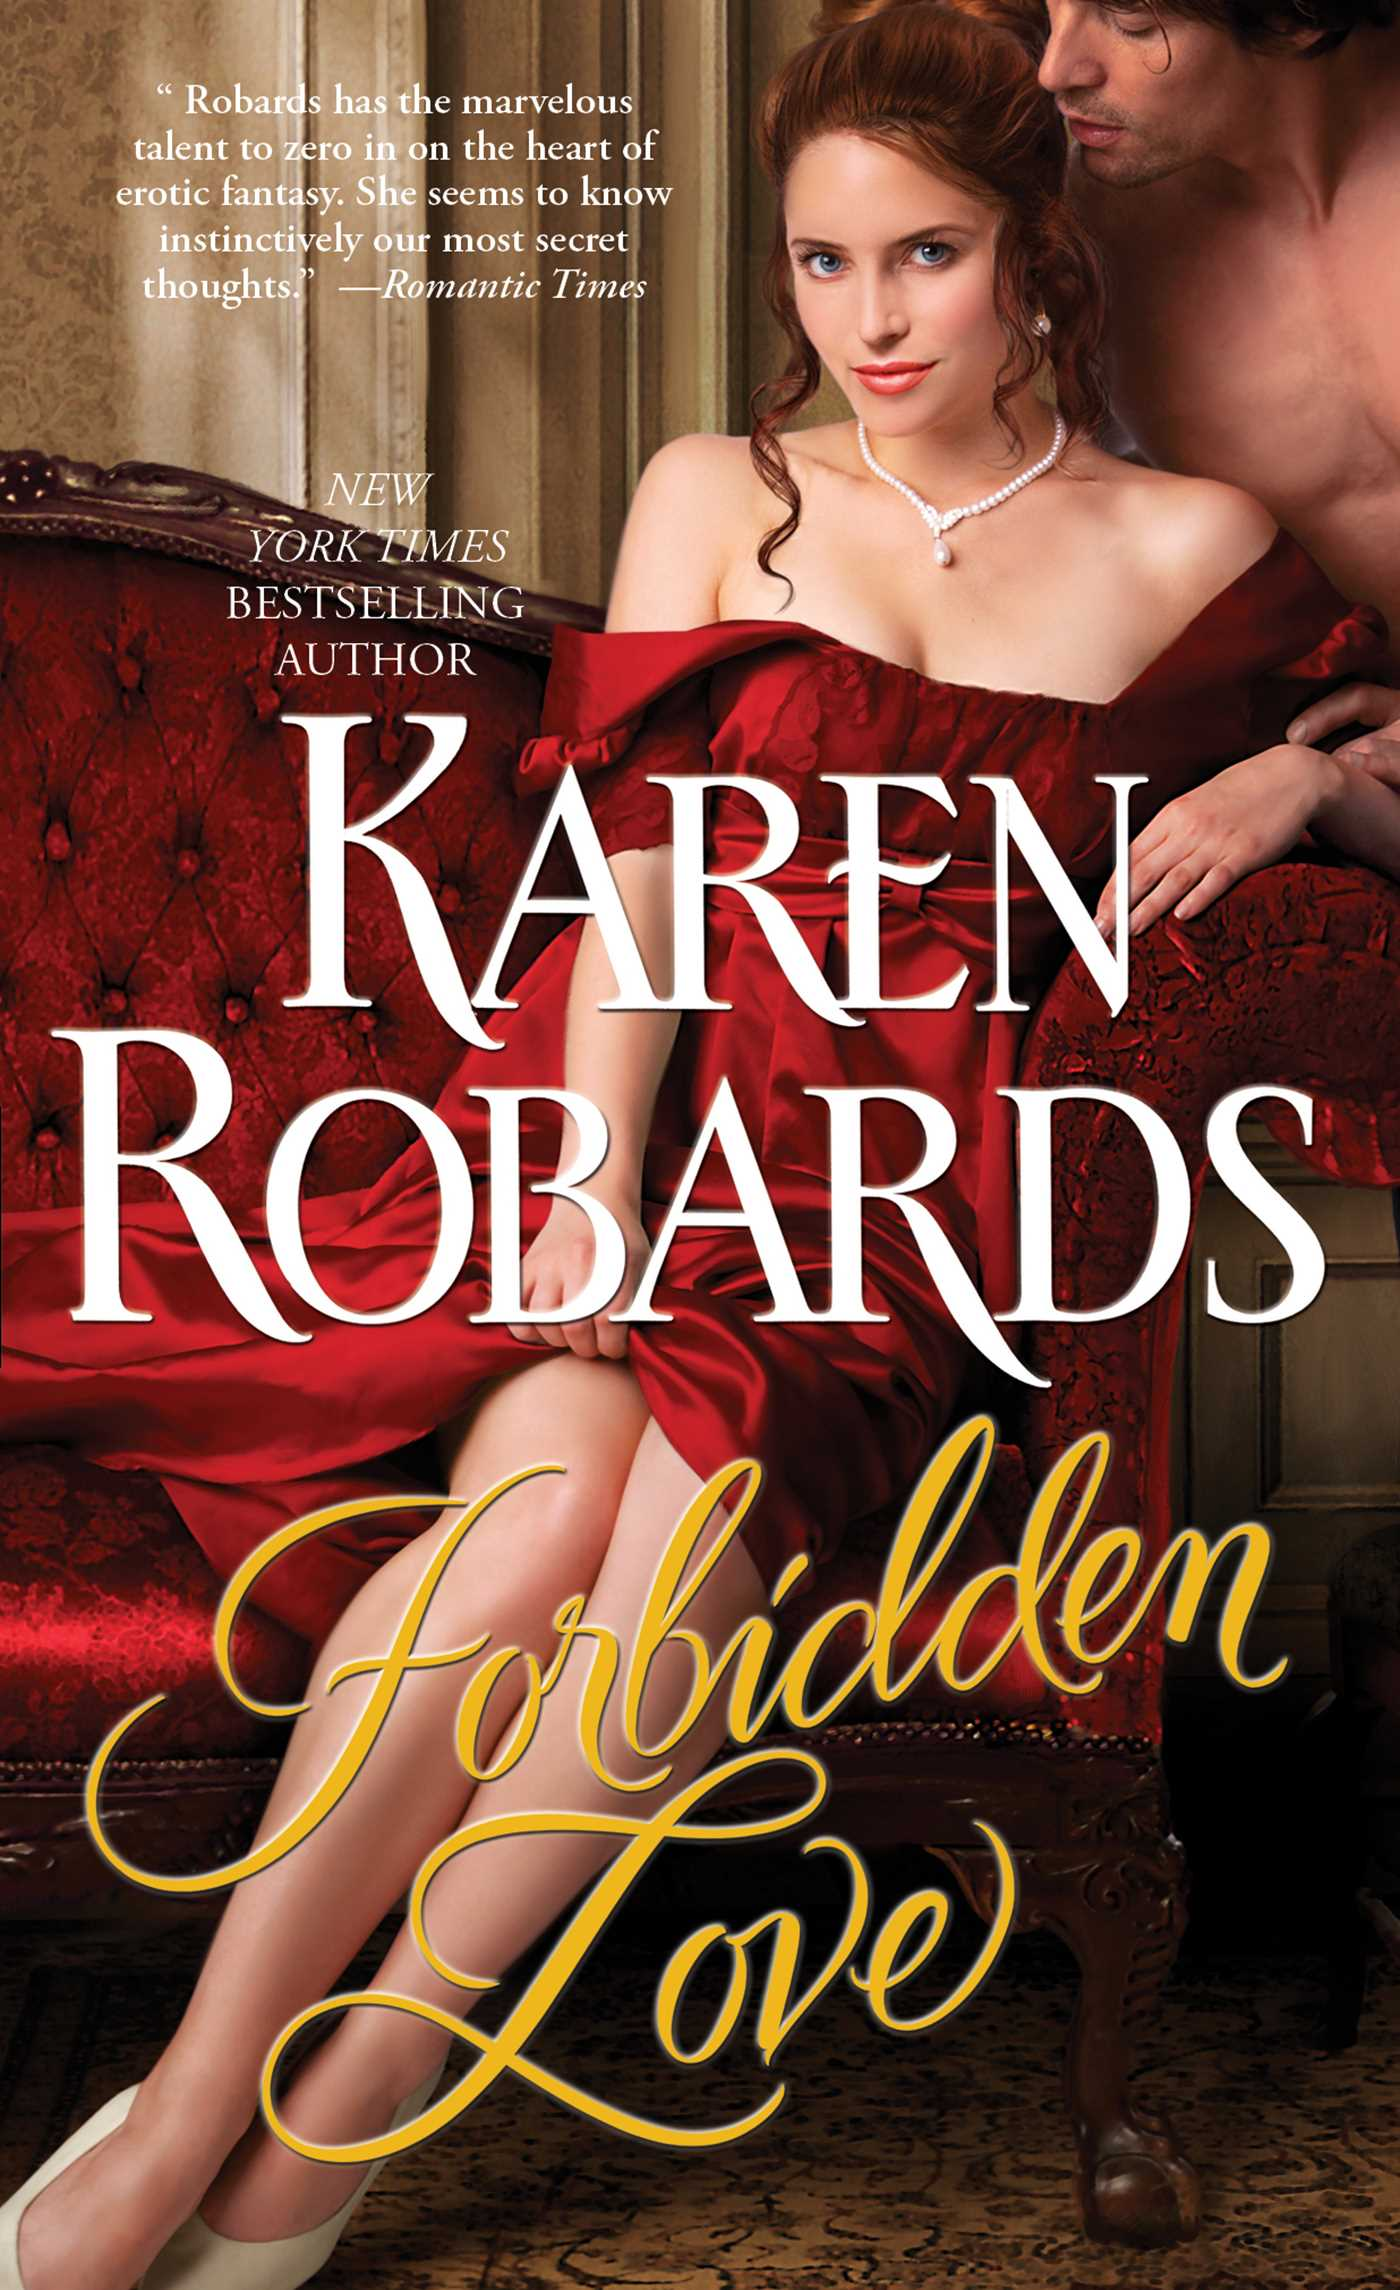 Forbidden-love-9781451649802_hr